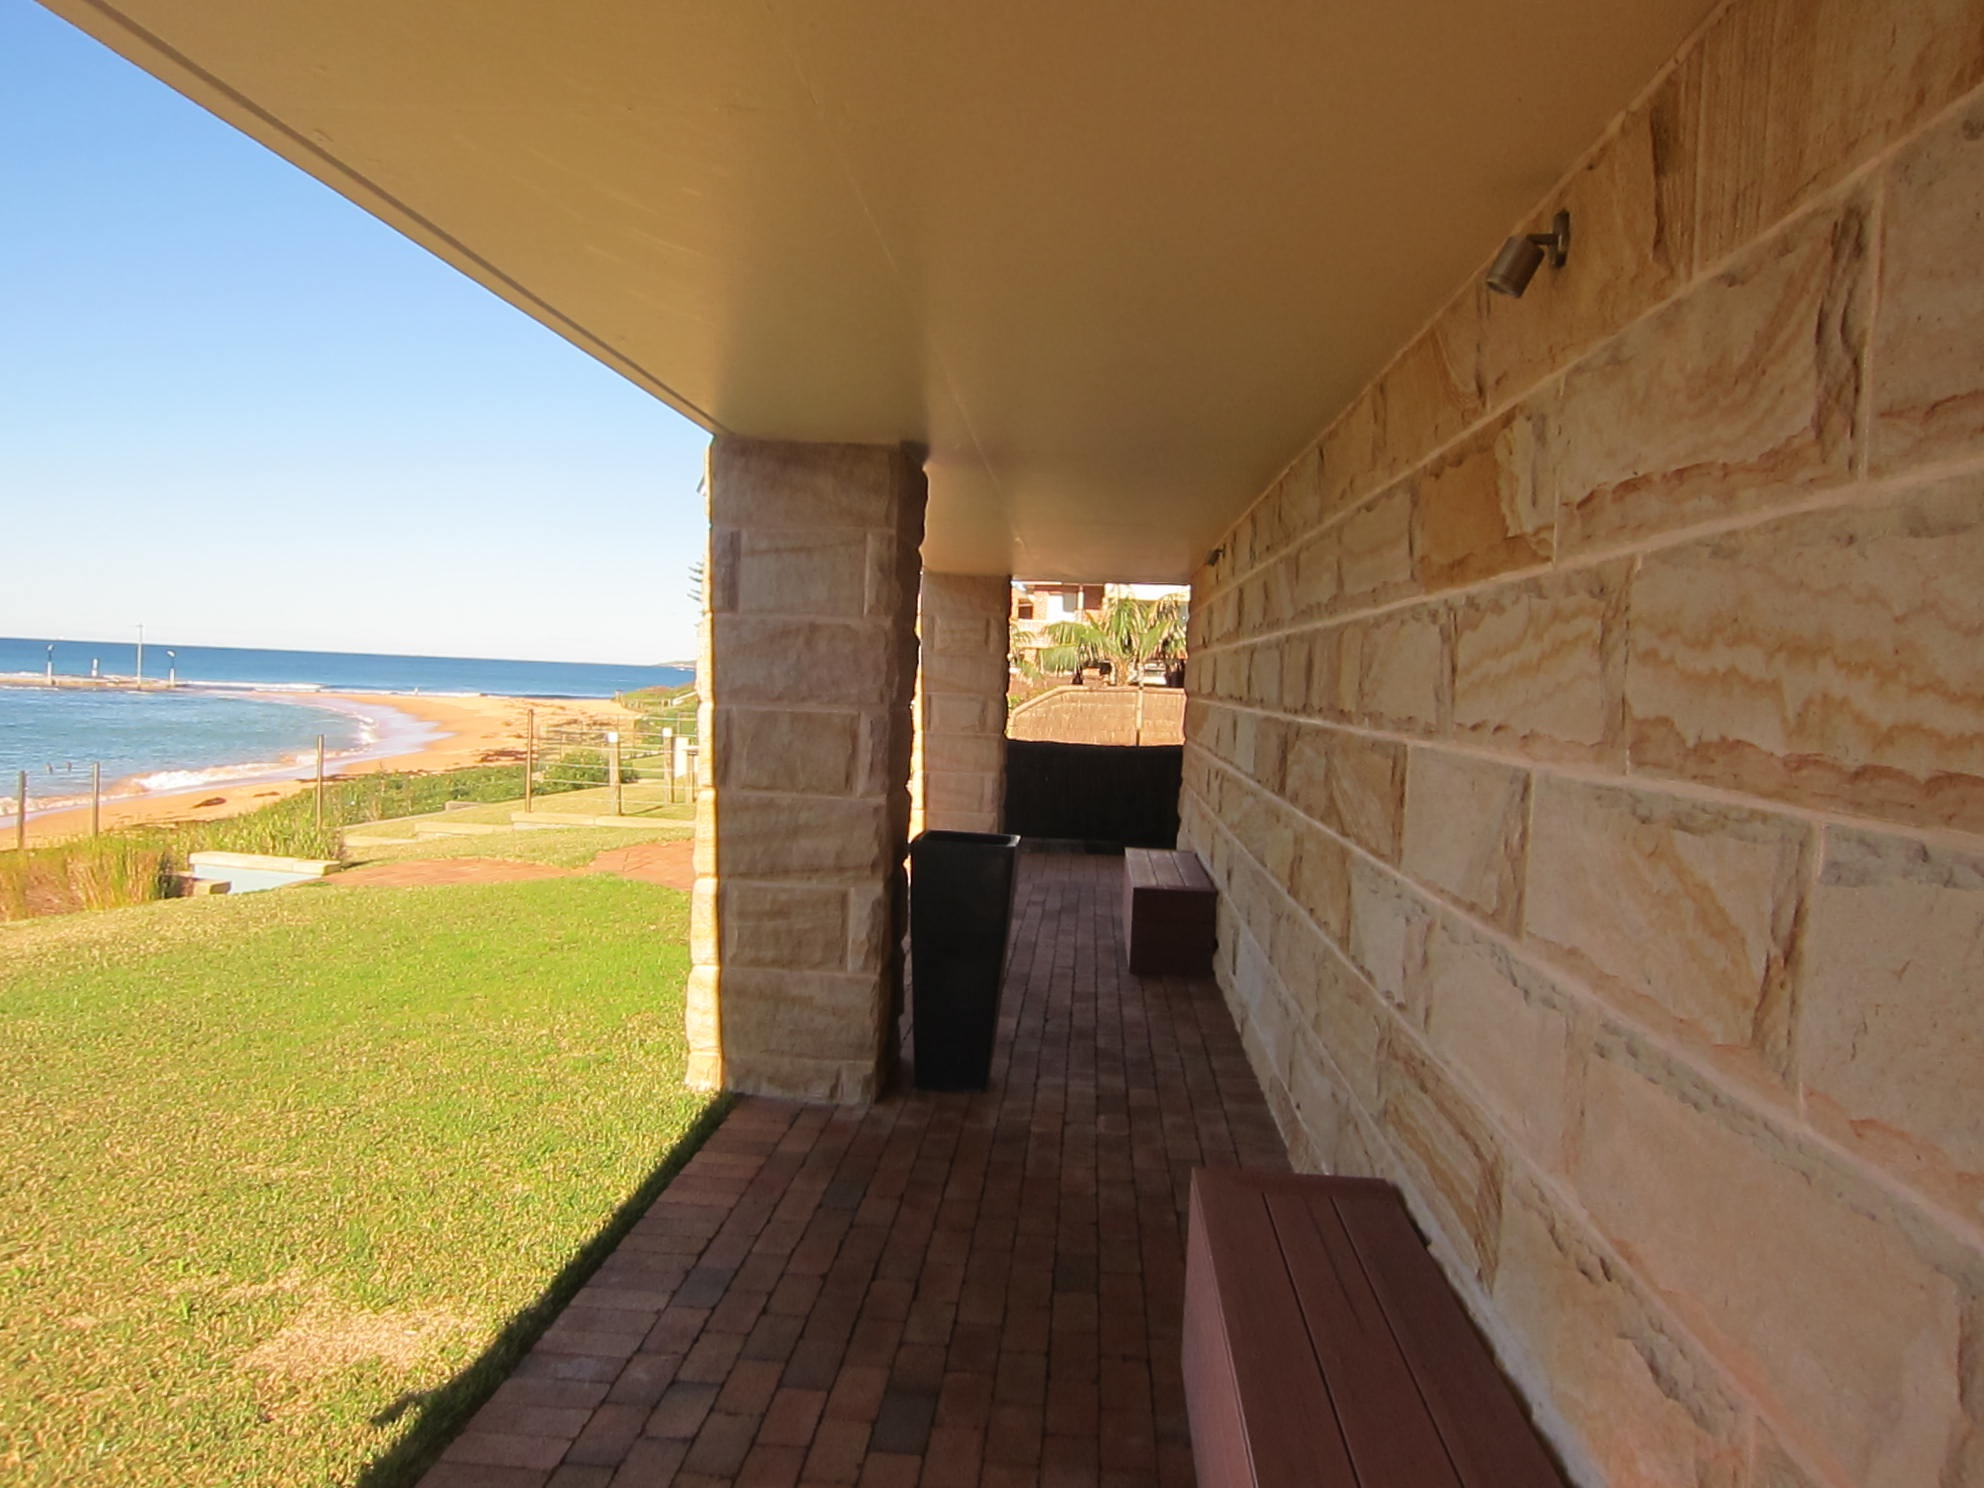 Sandstone columns and cladding Sydney.